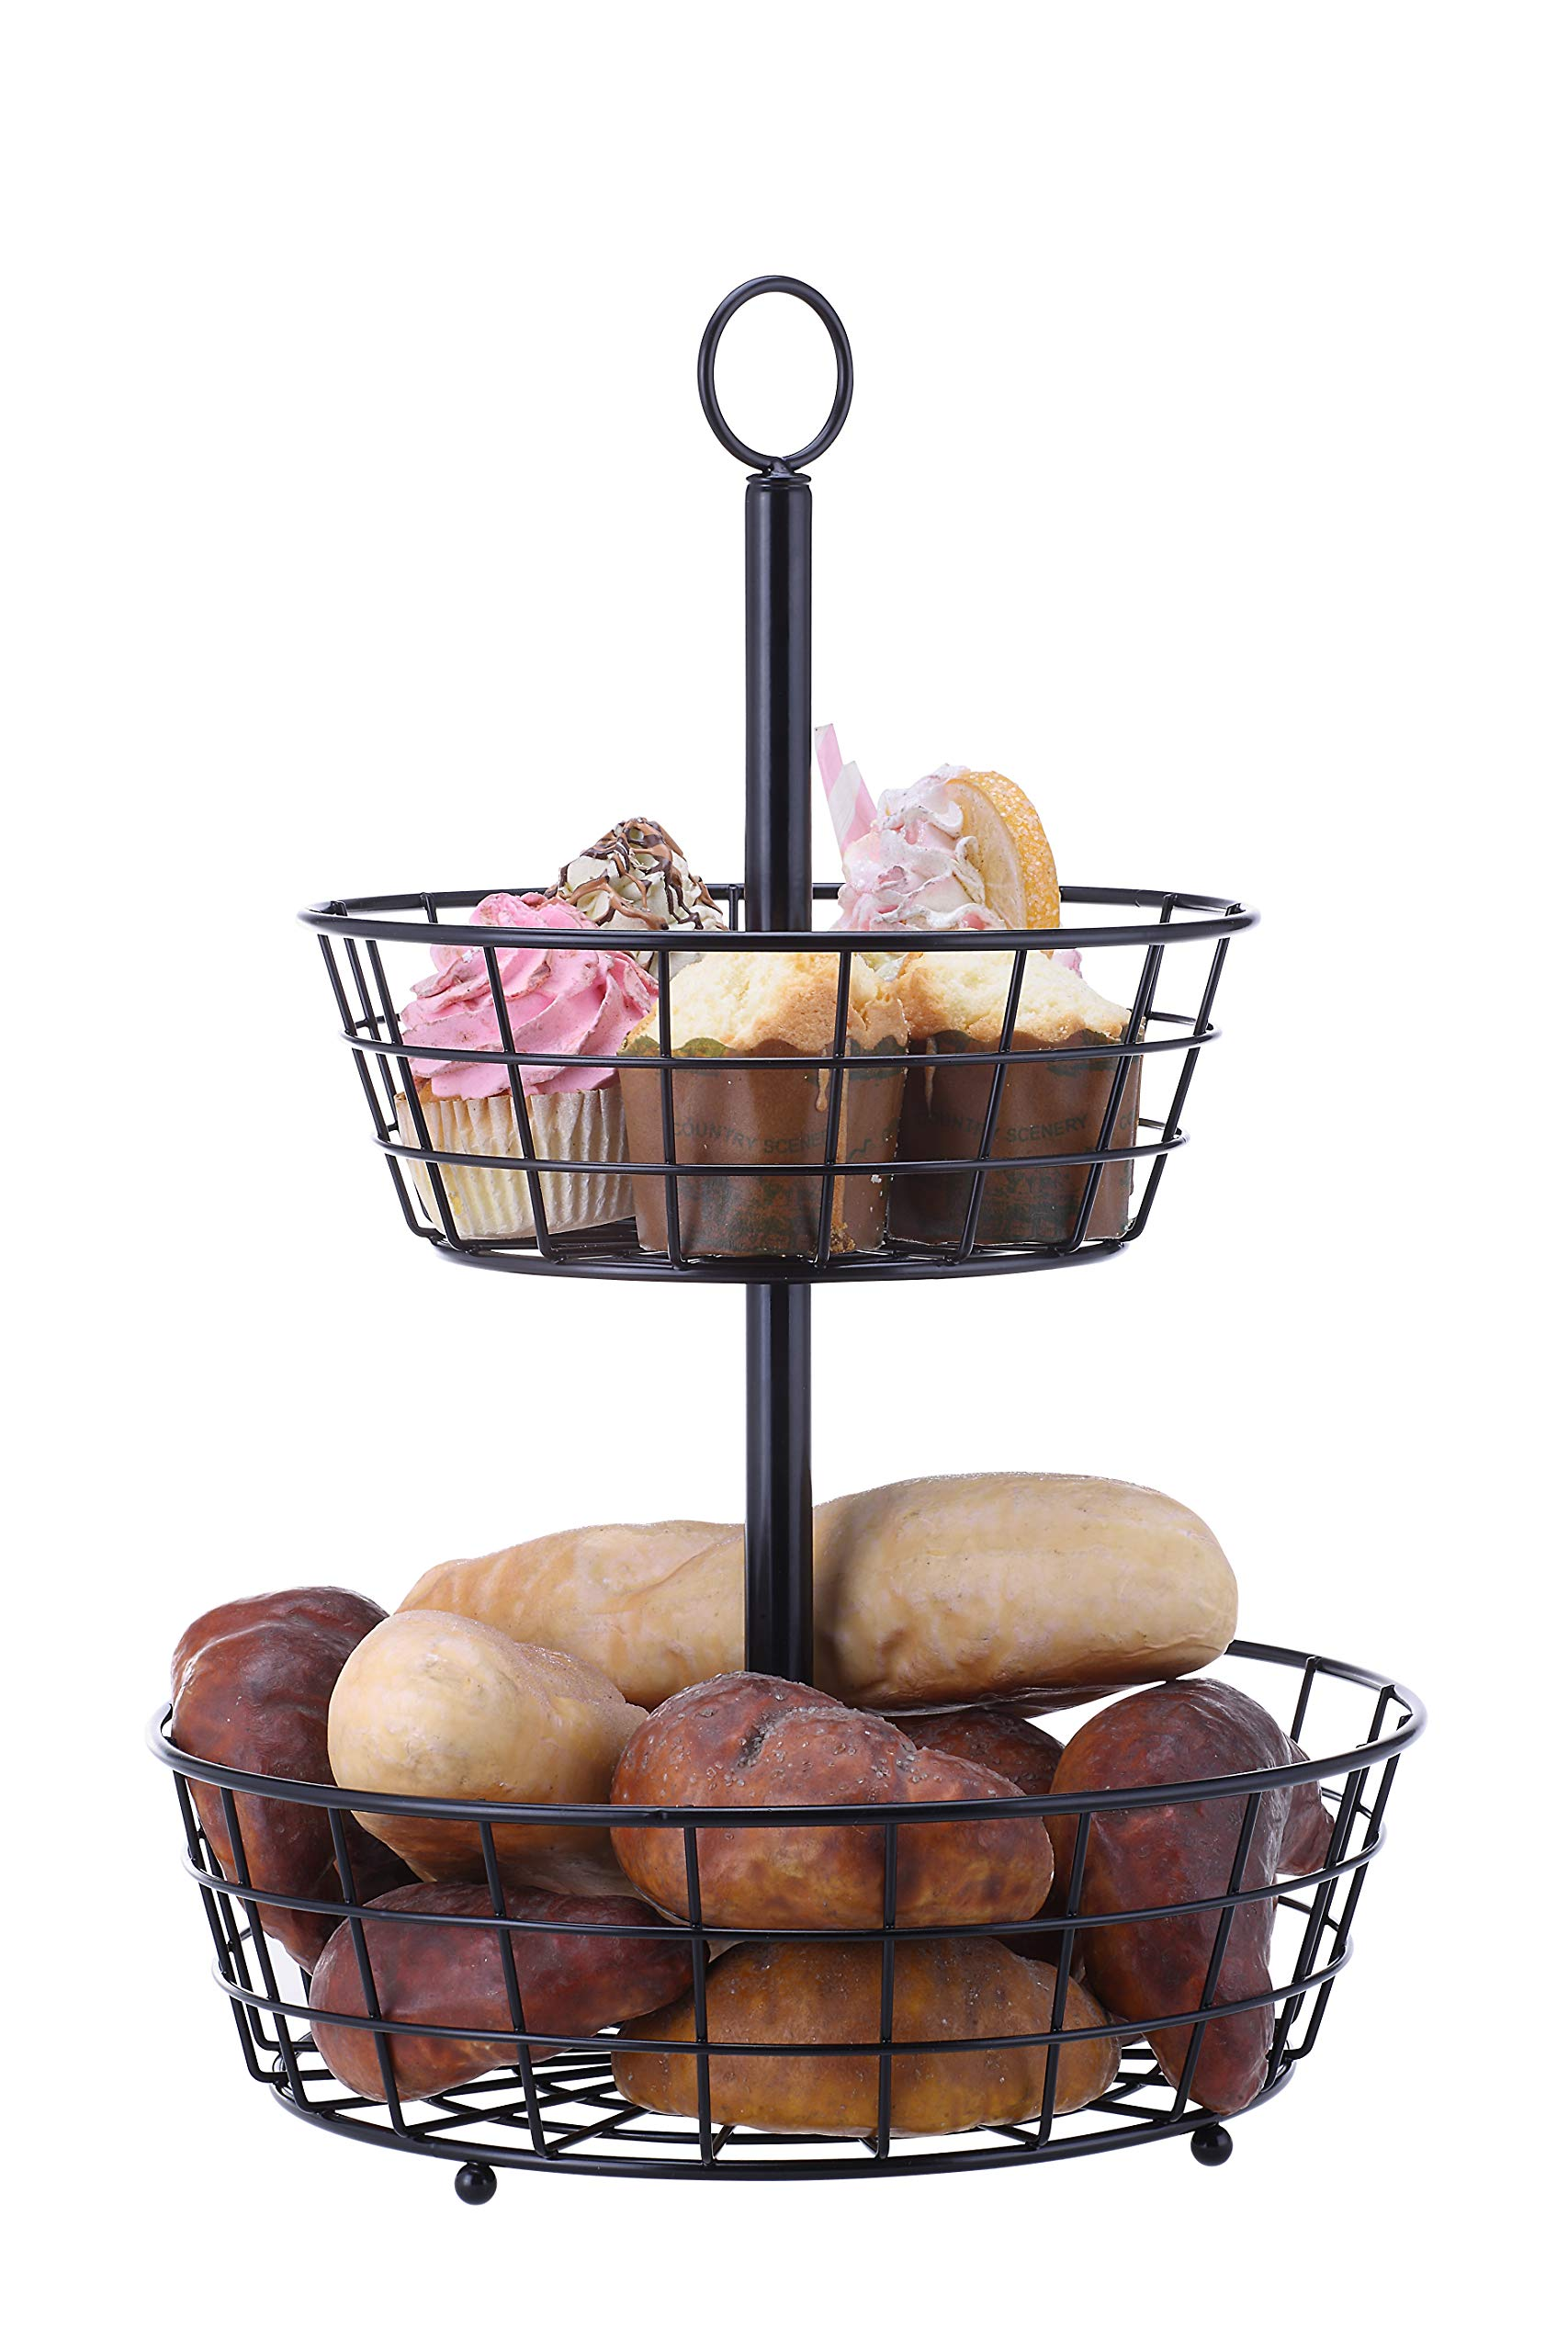 SunnyPoint Tabletop 2-Tier Countertop Fruit Basket Stand by SunnyPoint (Image #2)